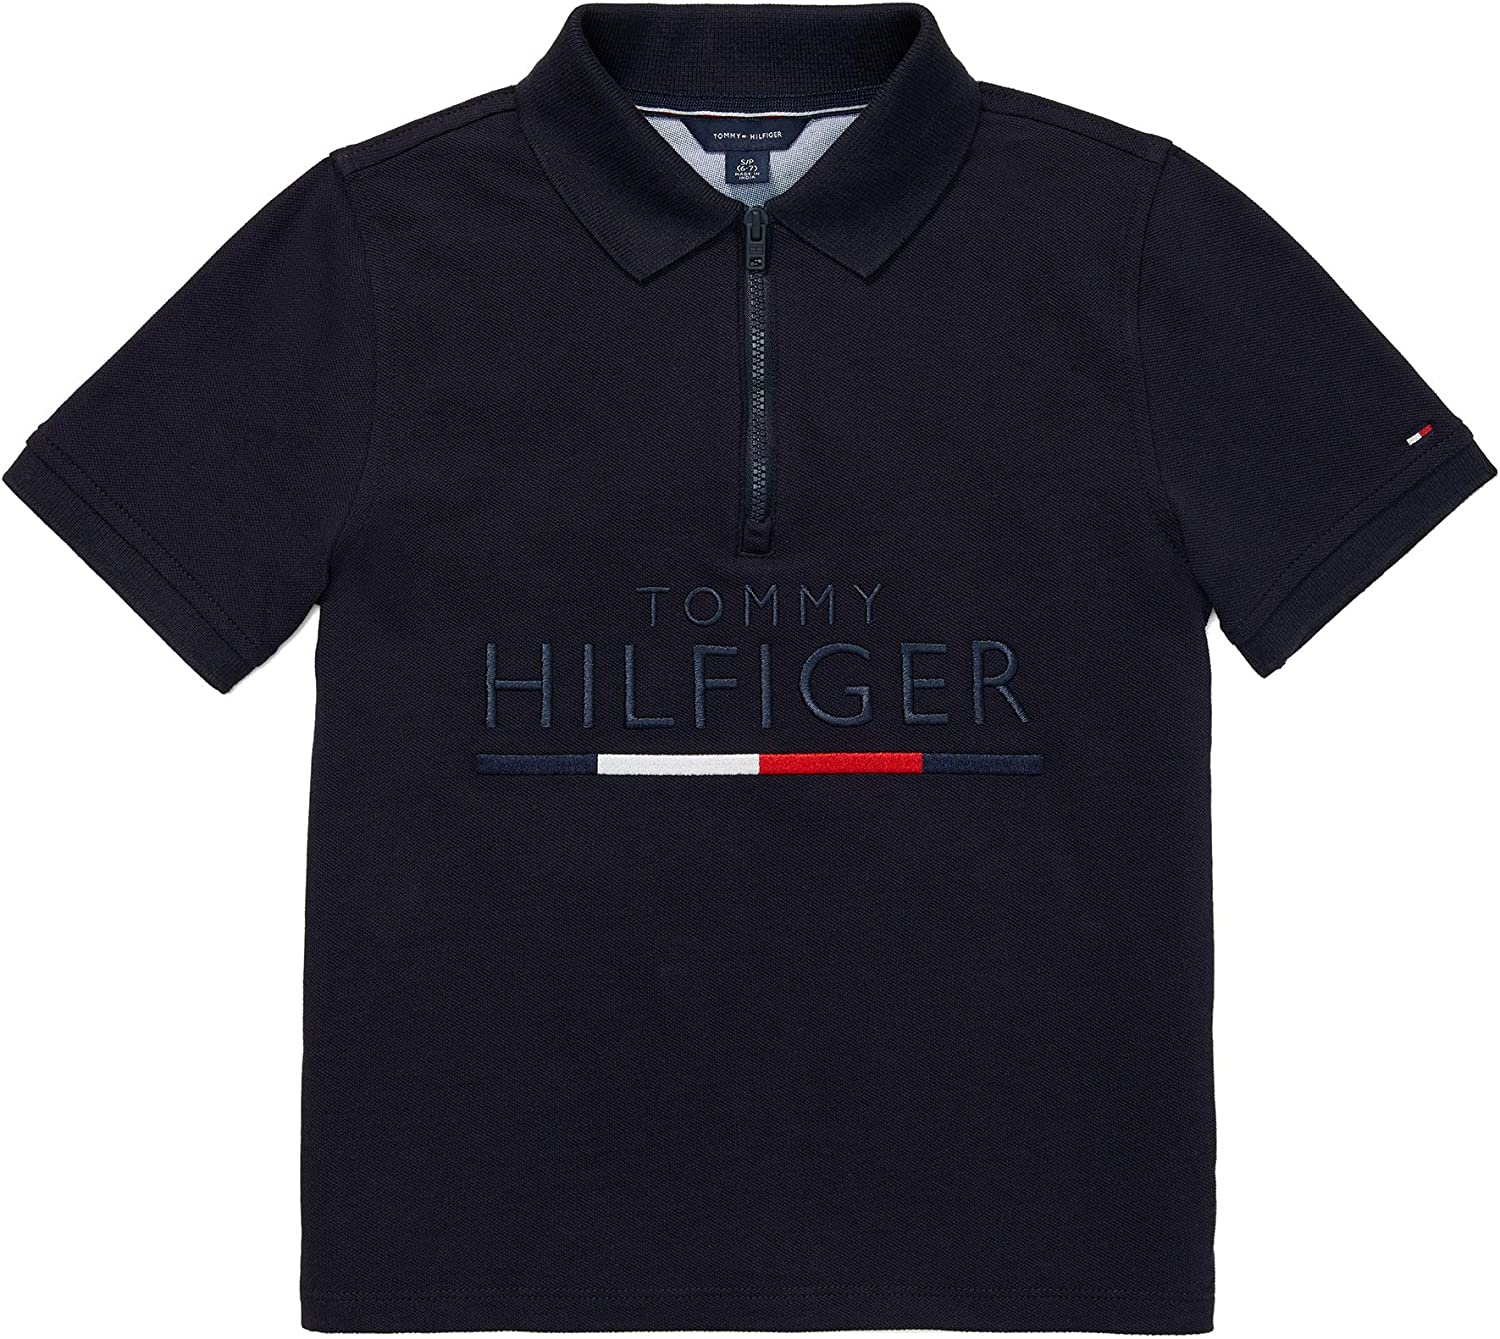 Tommy Hilfiger Credence Boys' Adaptive Max 42% OFF Polo Shirt Closure with Zipper